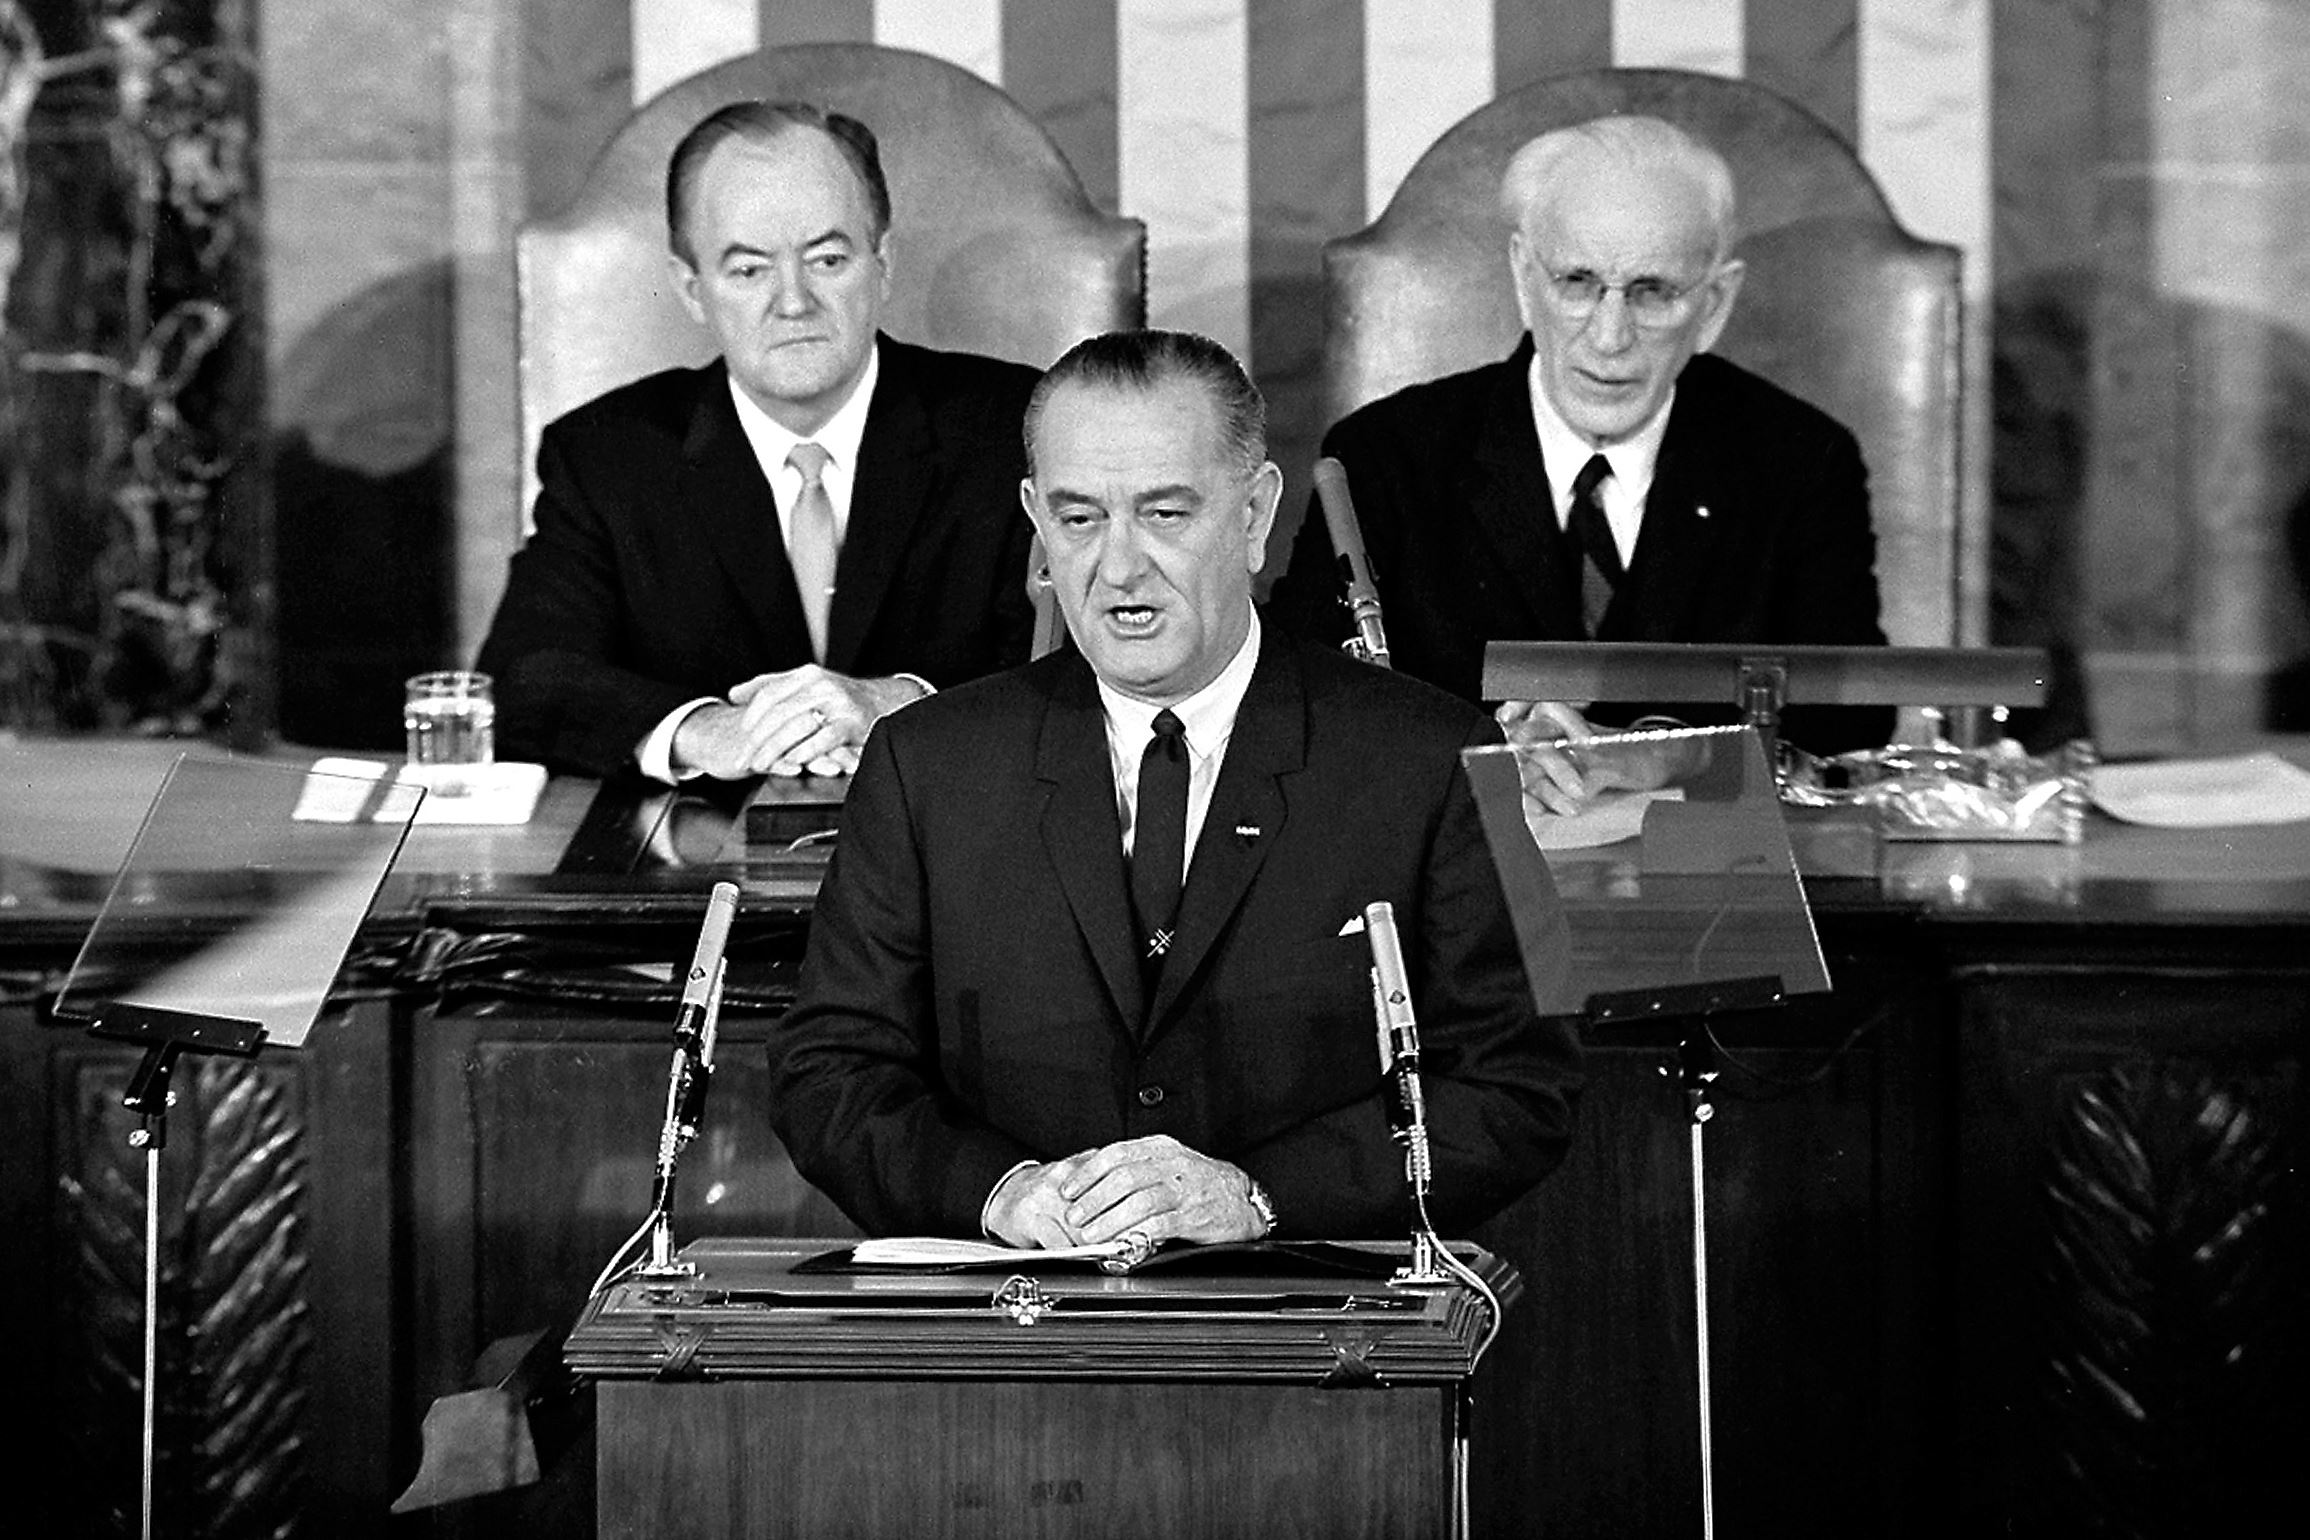 A great speech turns 50: LBJ's eloquent call for voting rights came together quickly